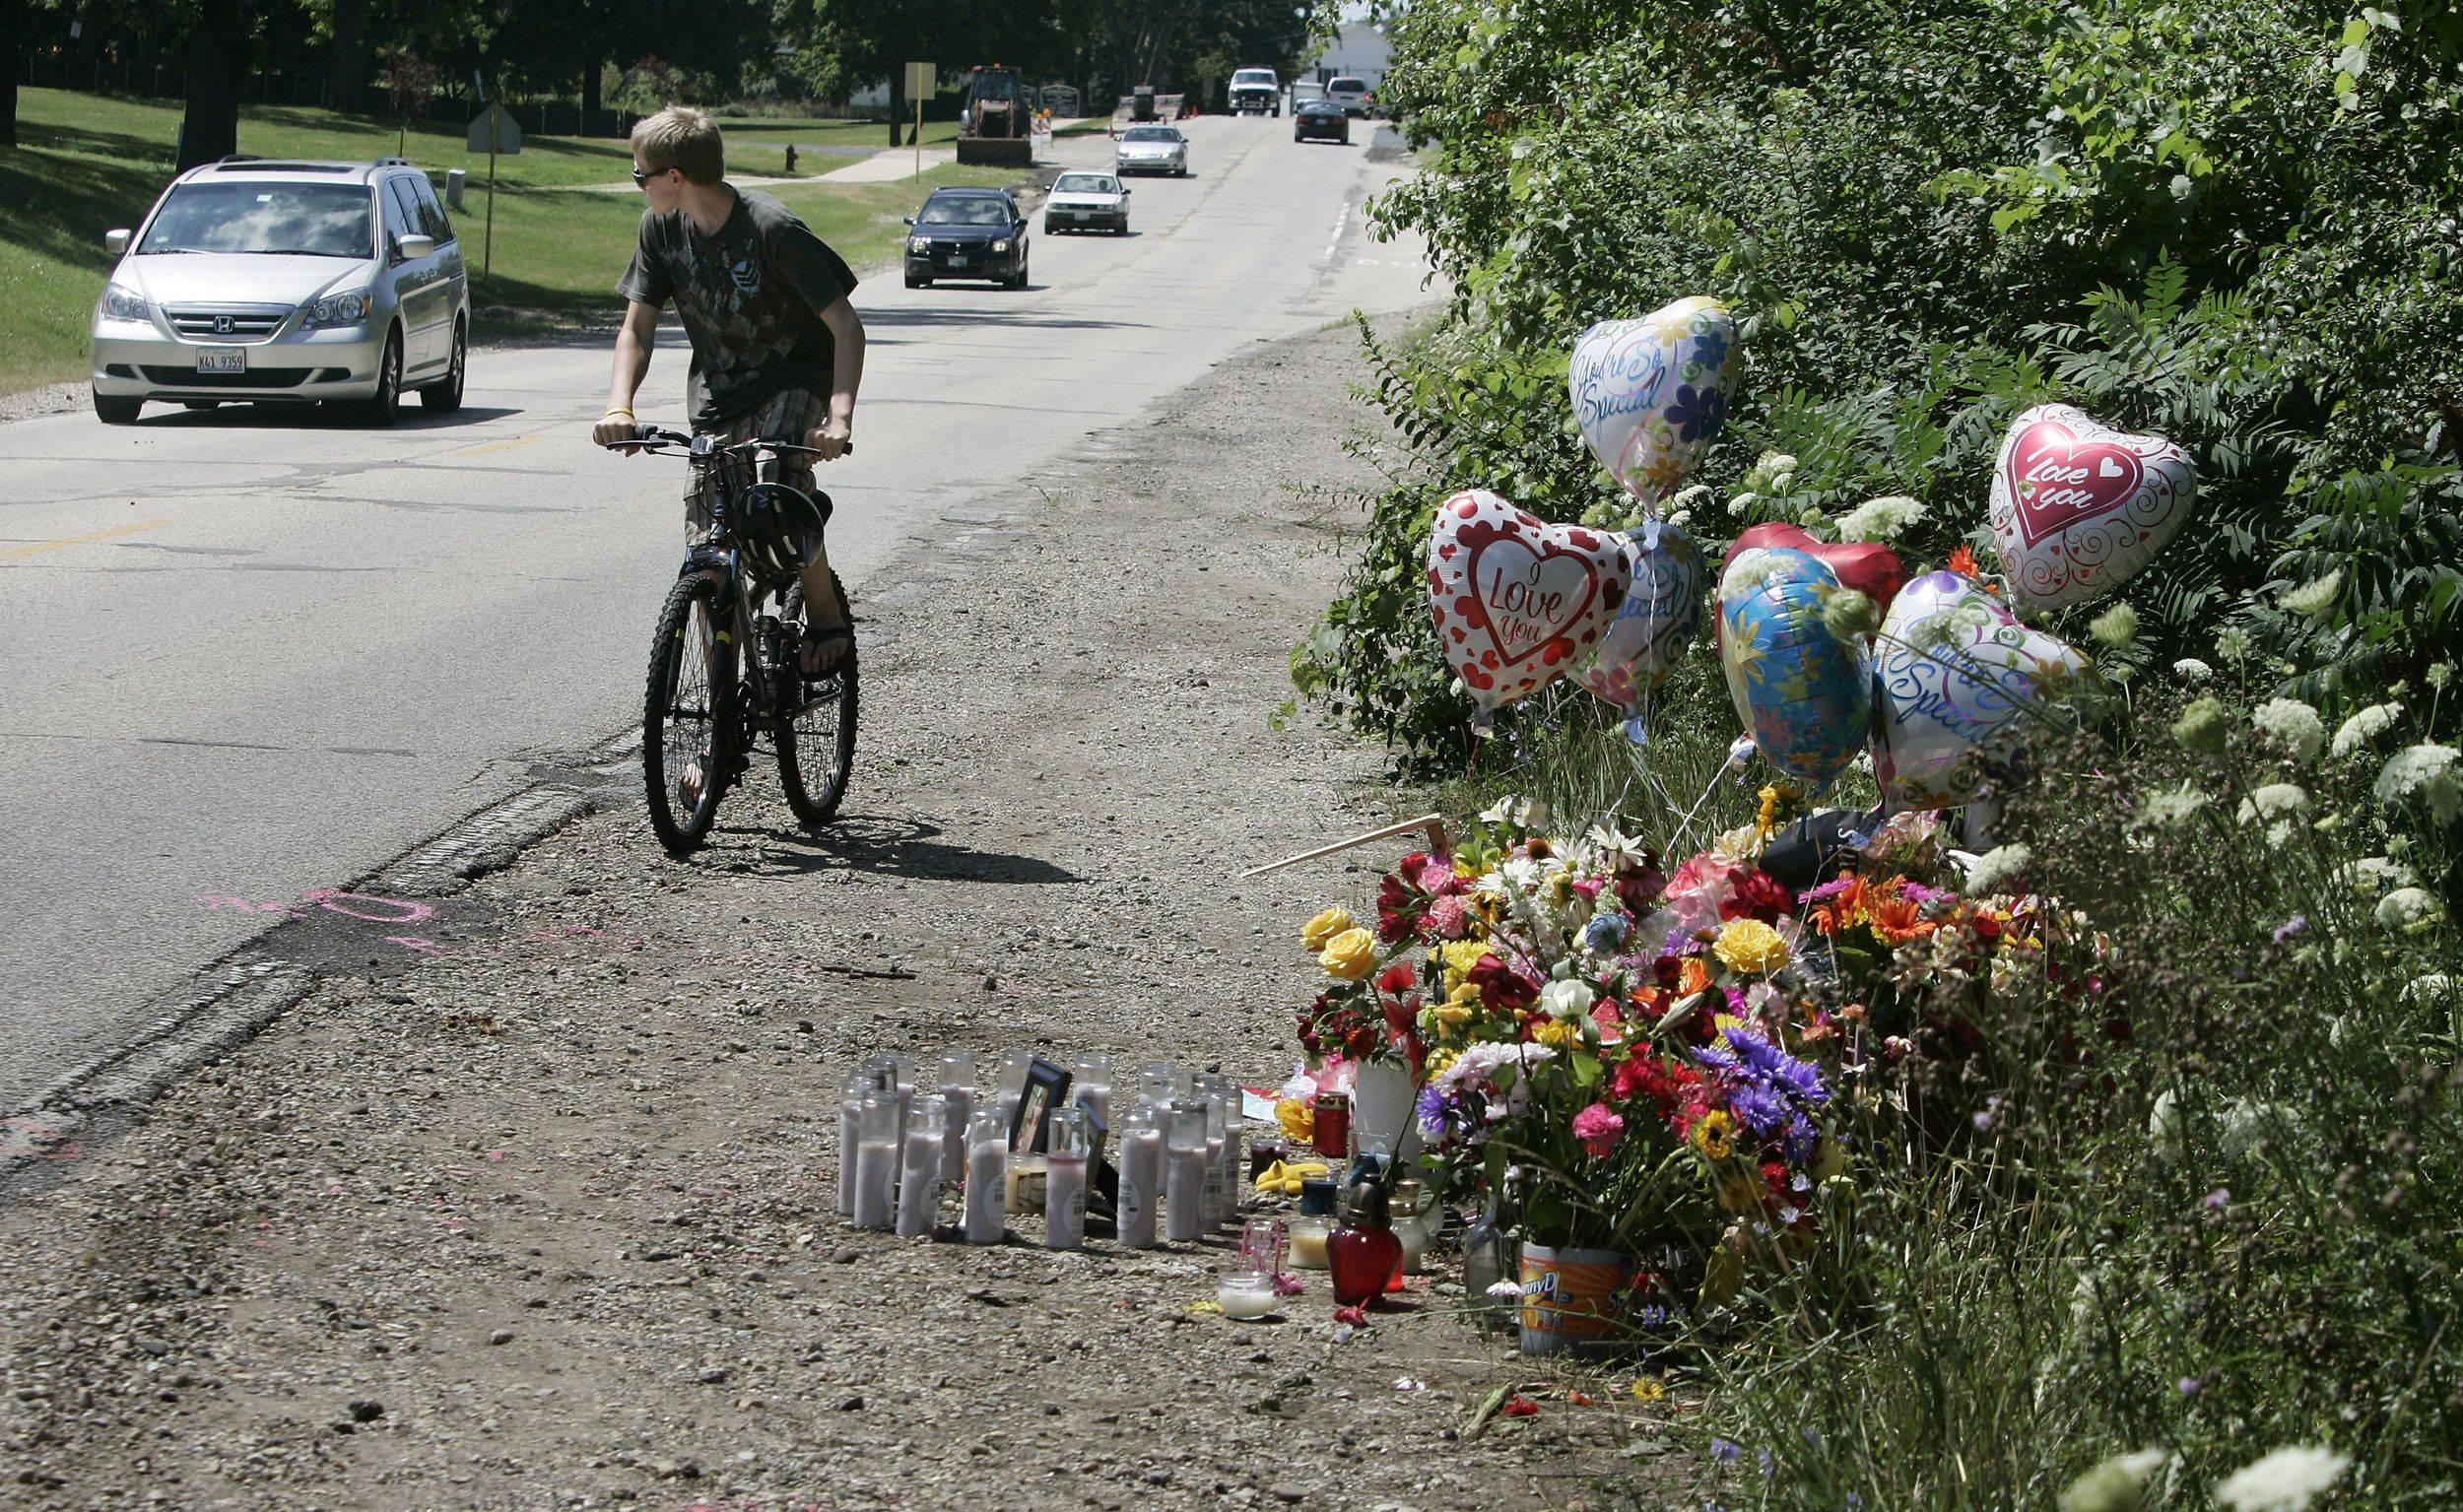 A bicyclist watches out for traffic near a memorial for hit-and-run victim Gabriella Drozdz.